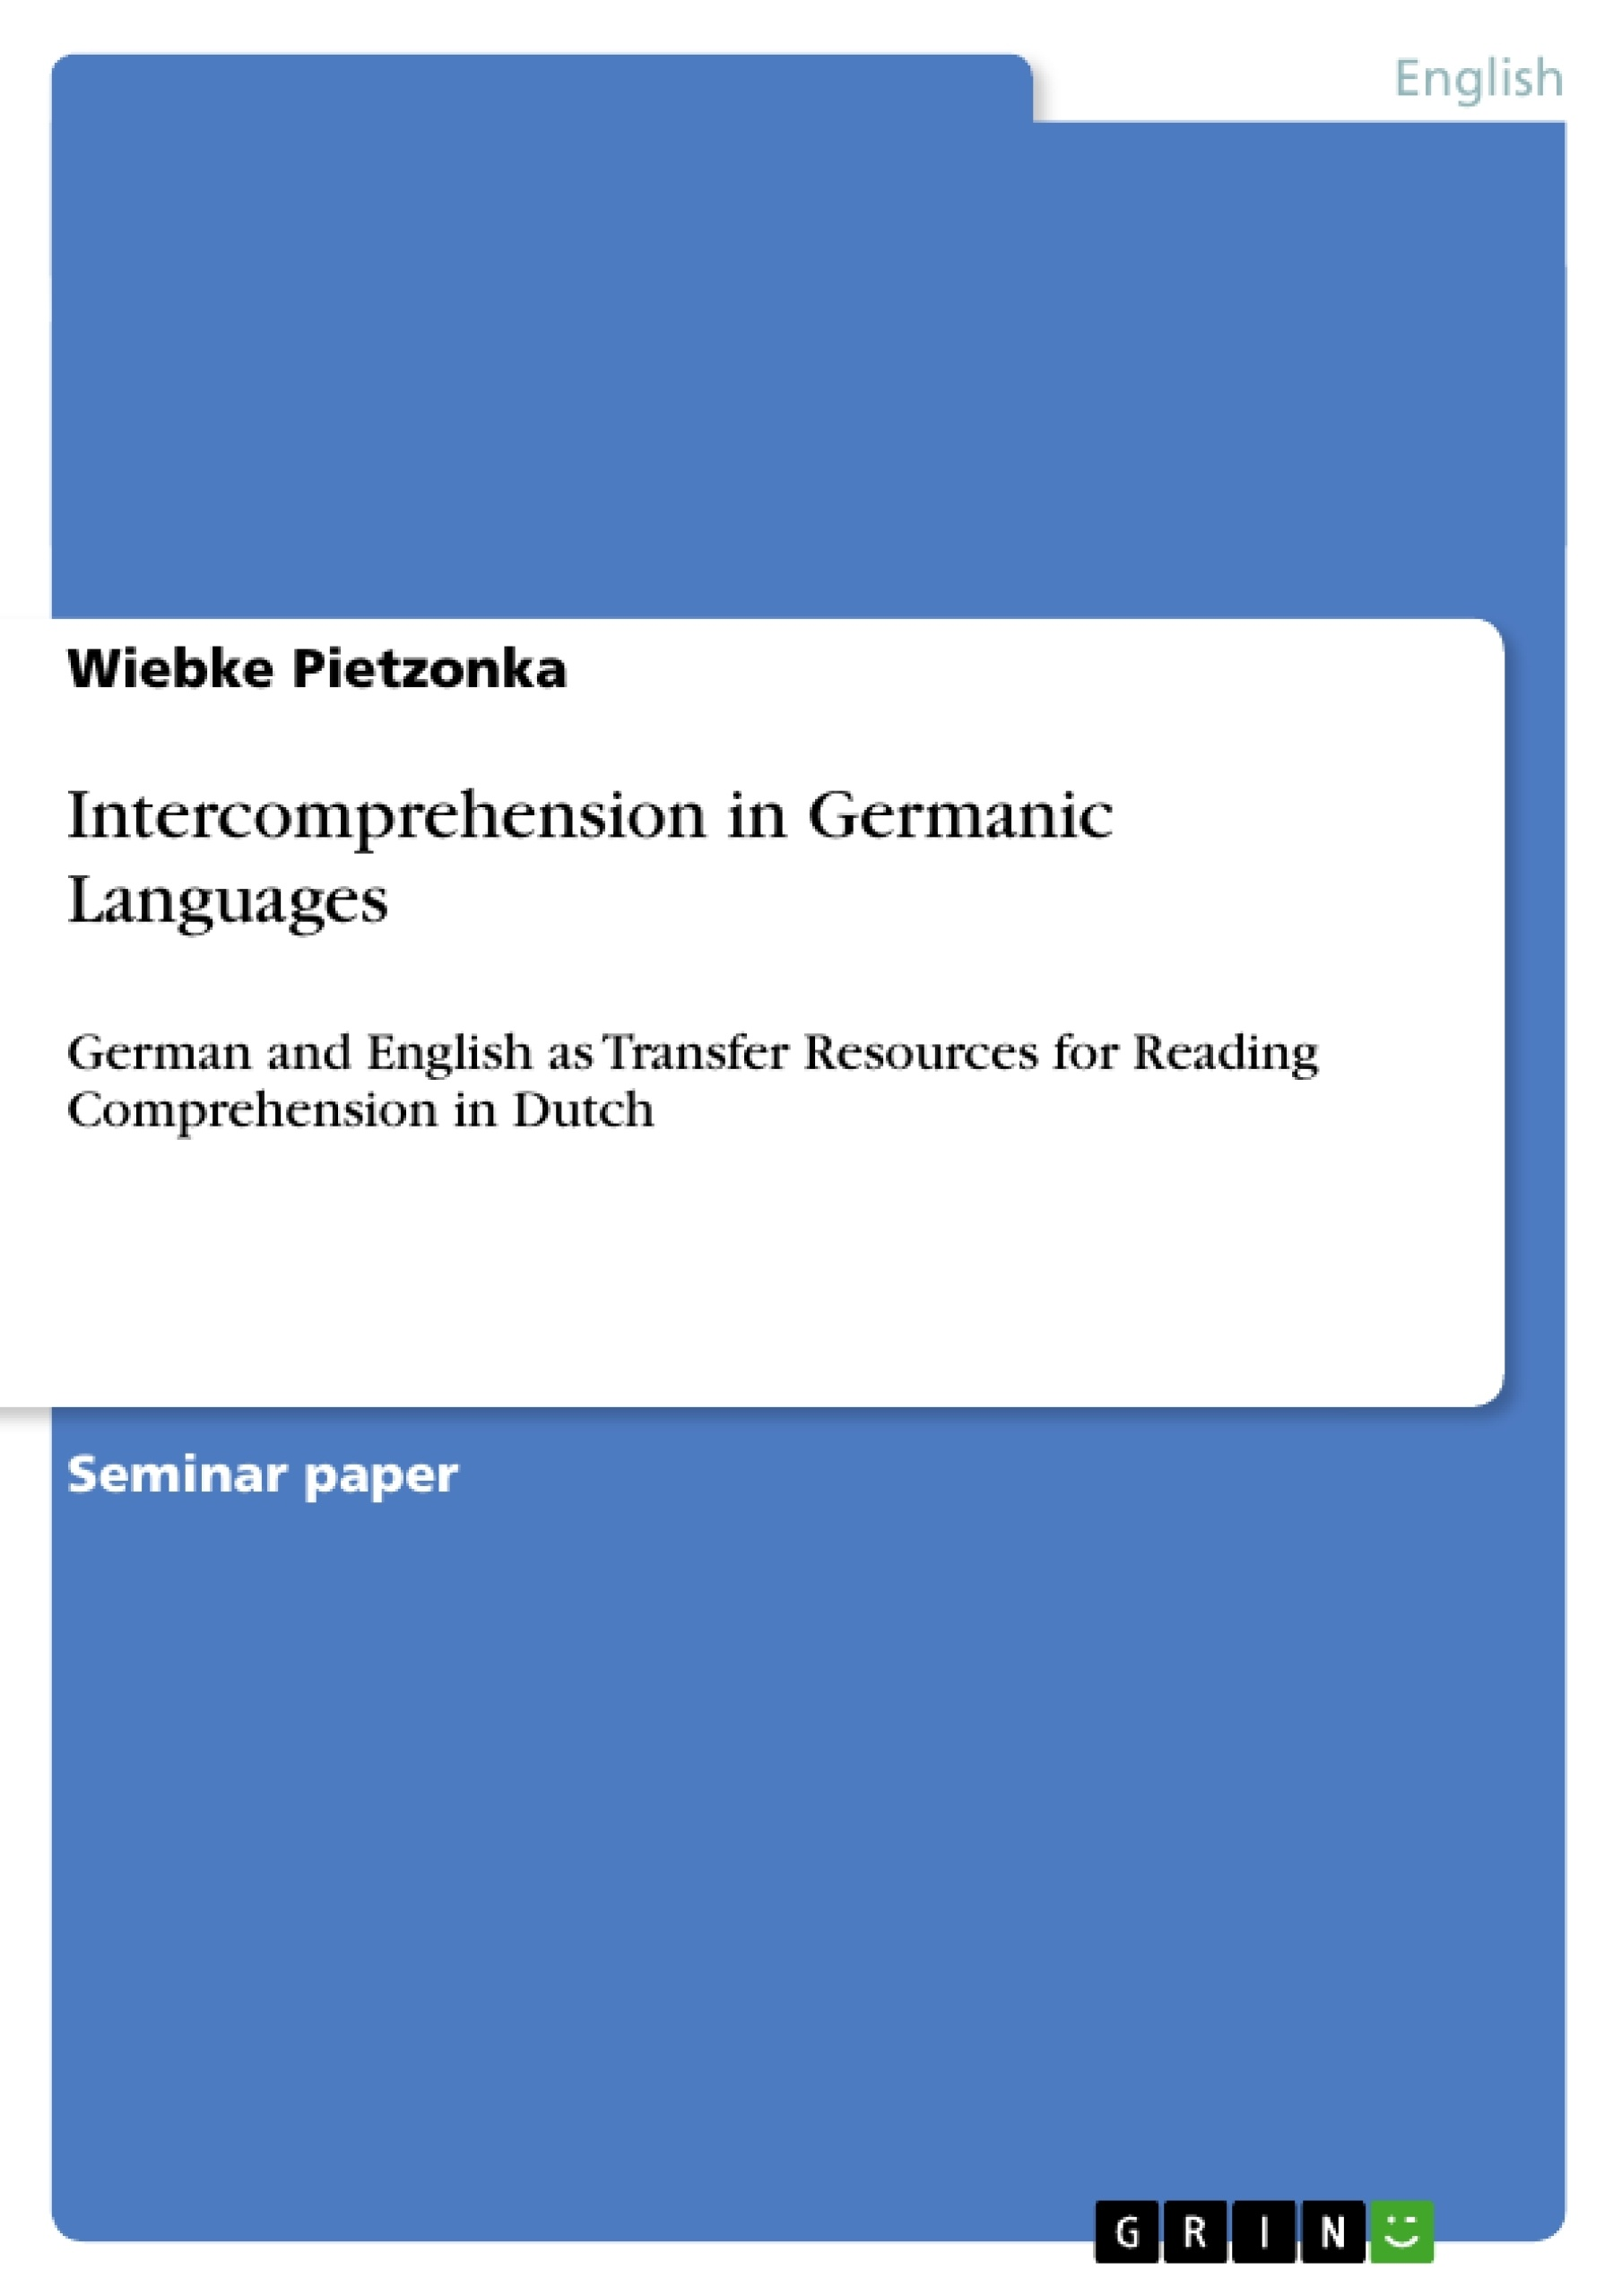 Title: Intercomprehension in Germanic Languages